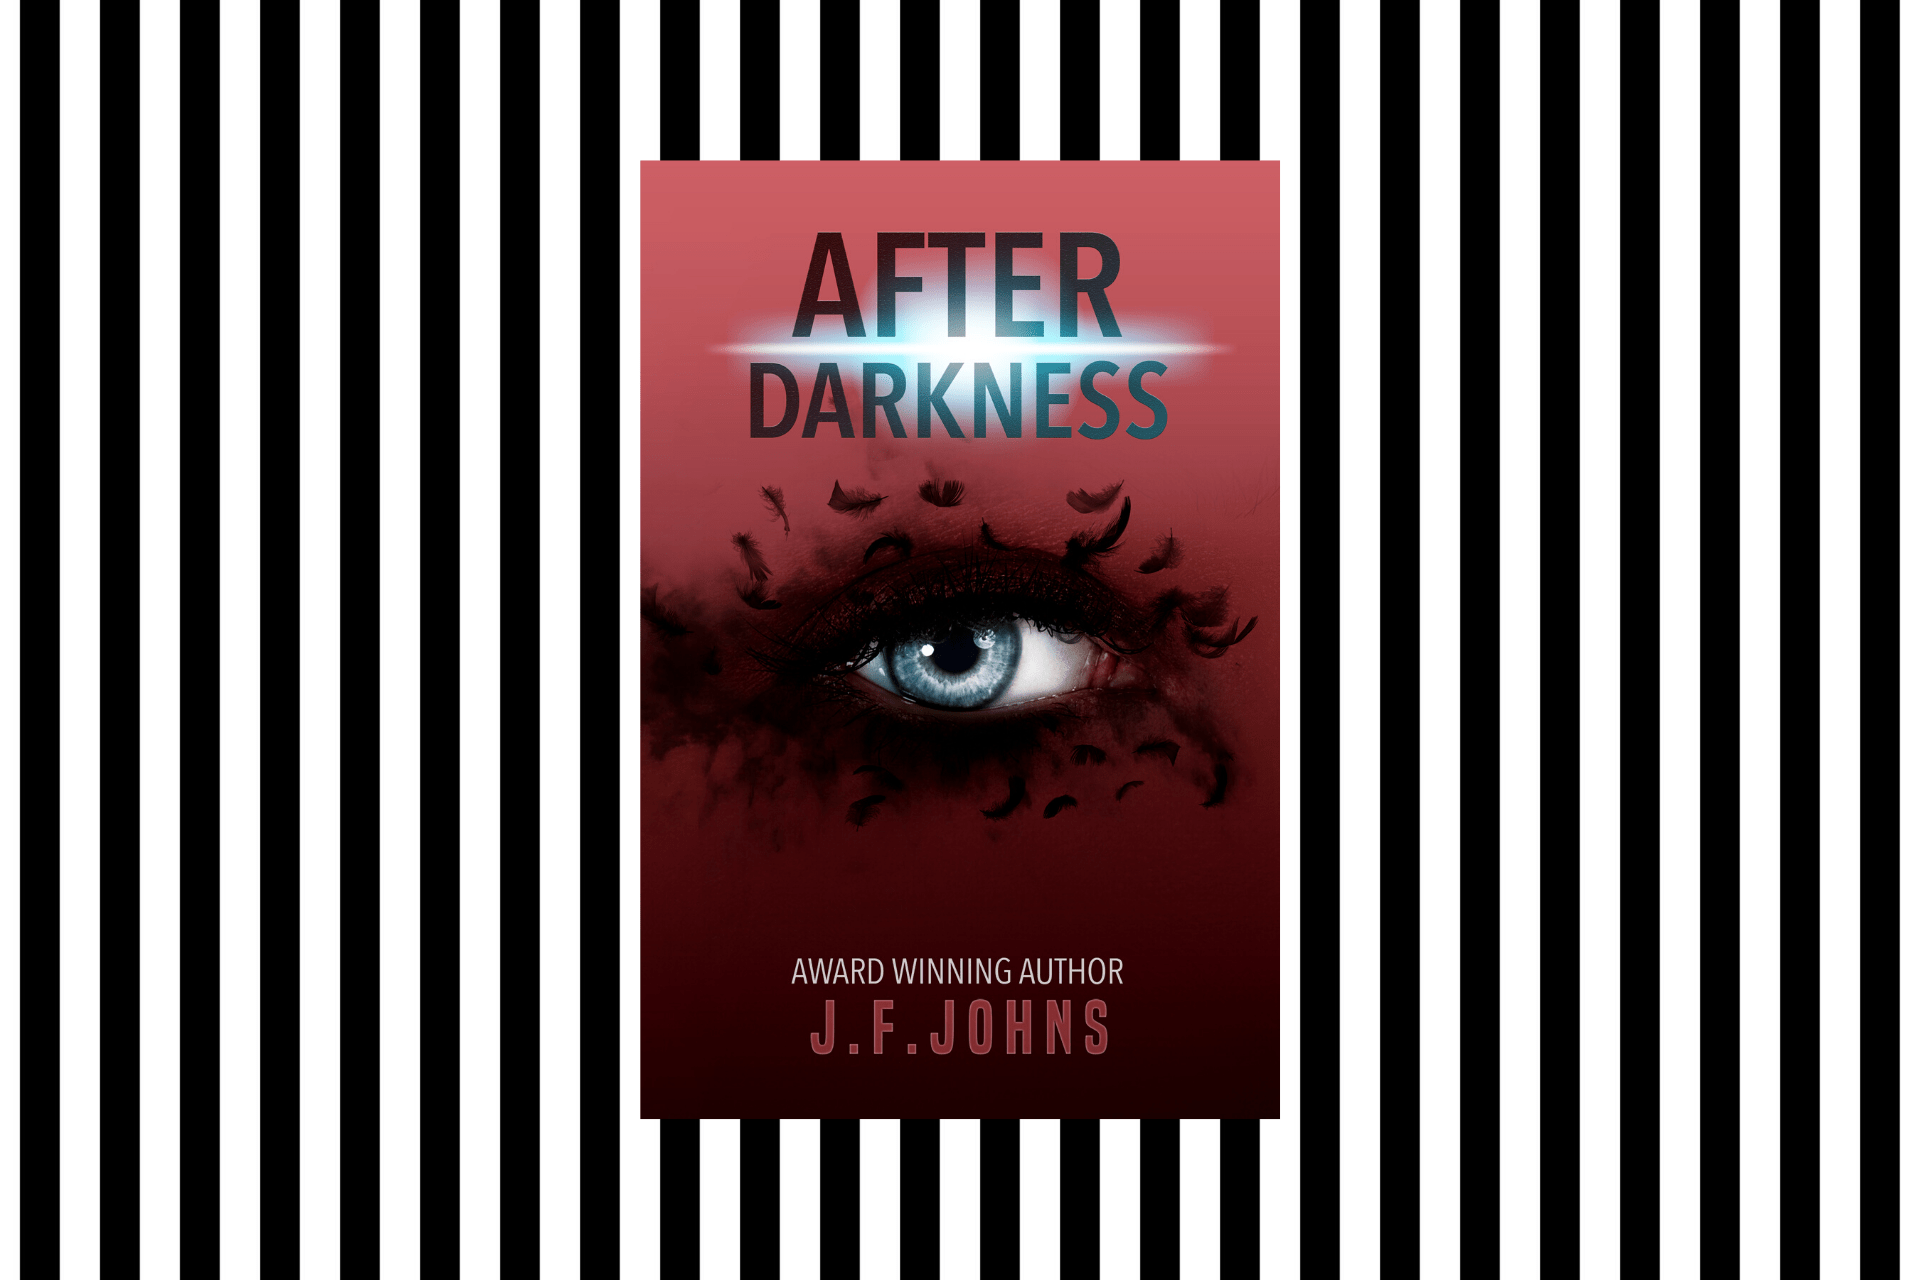 The cover of After Darkness by J F Johns